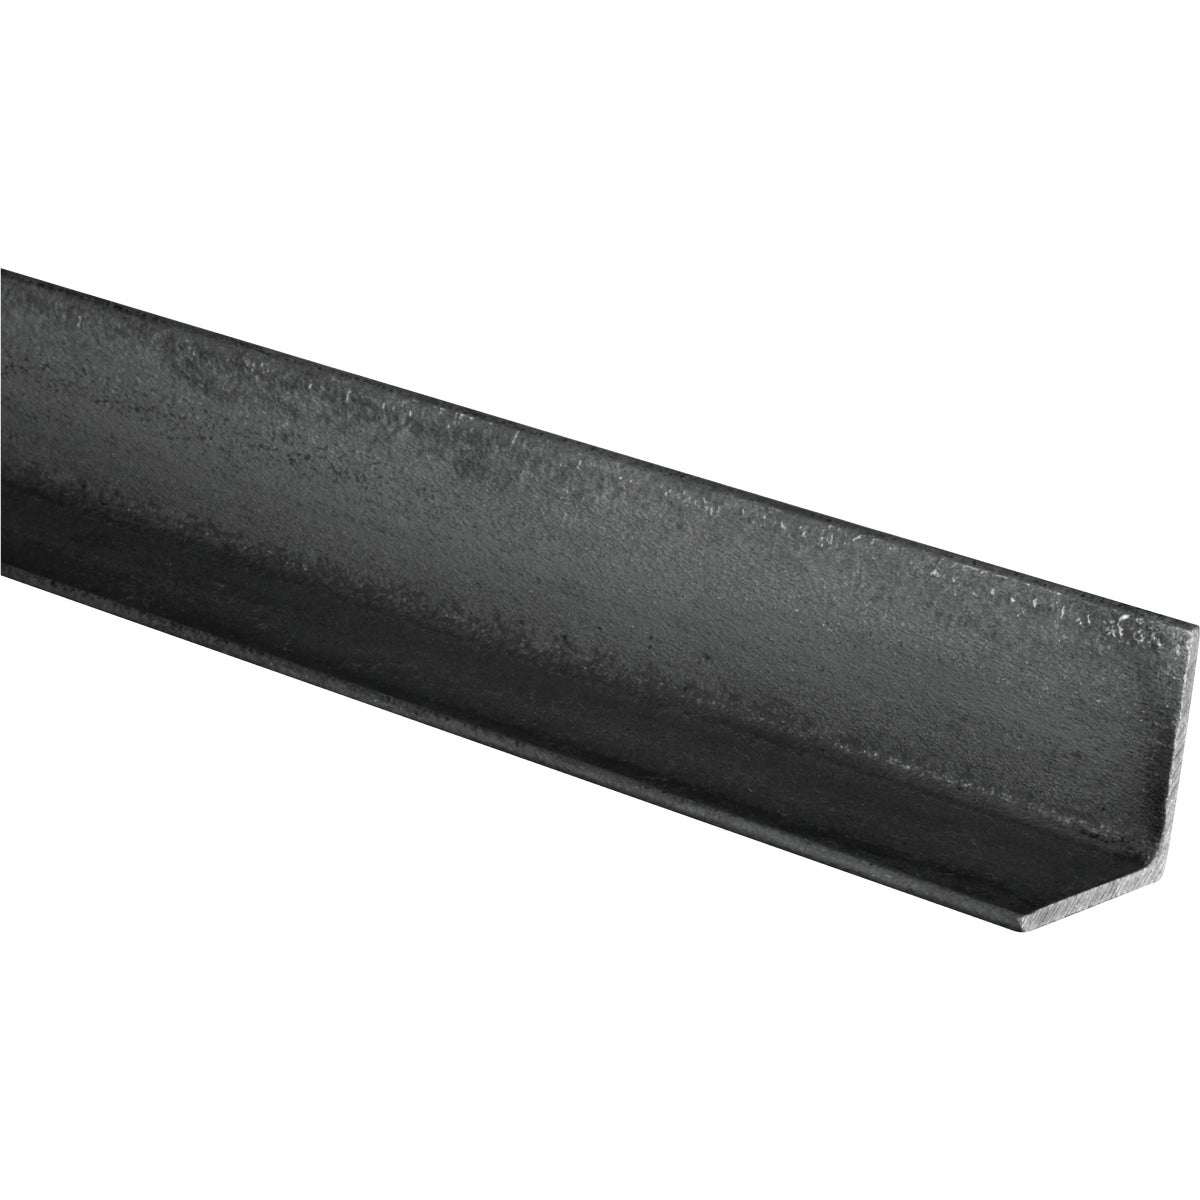 1/8X1-1/4X6' HR ANGLE - N301499 by National Mfg Co